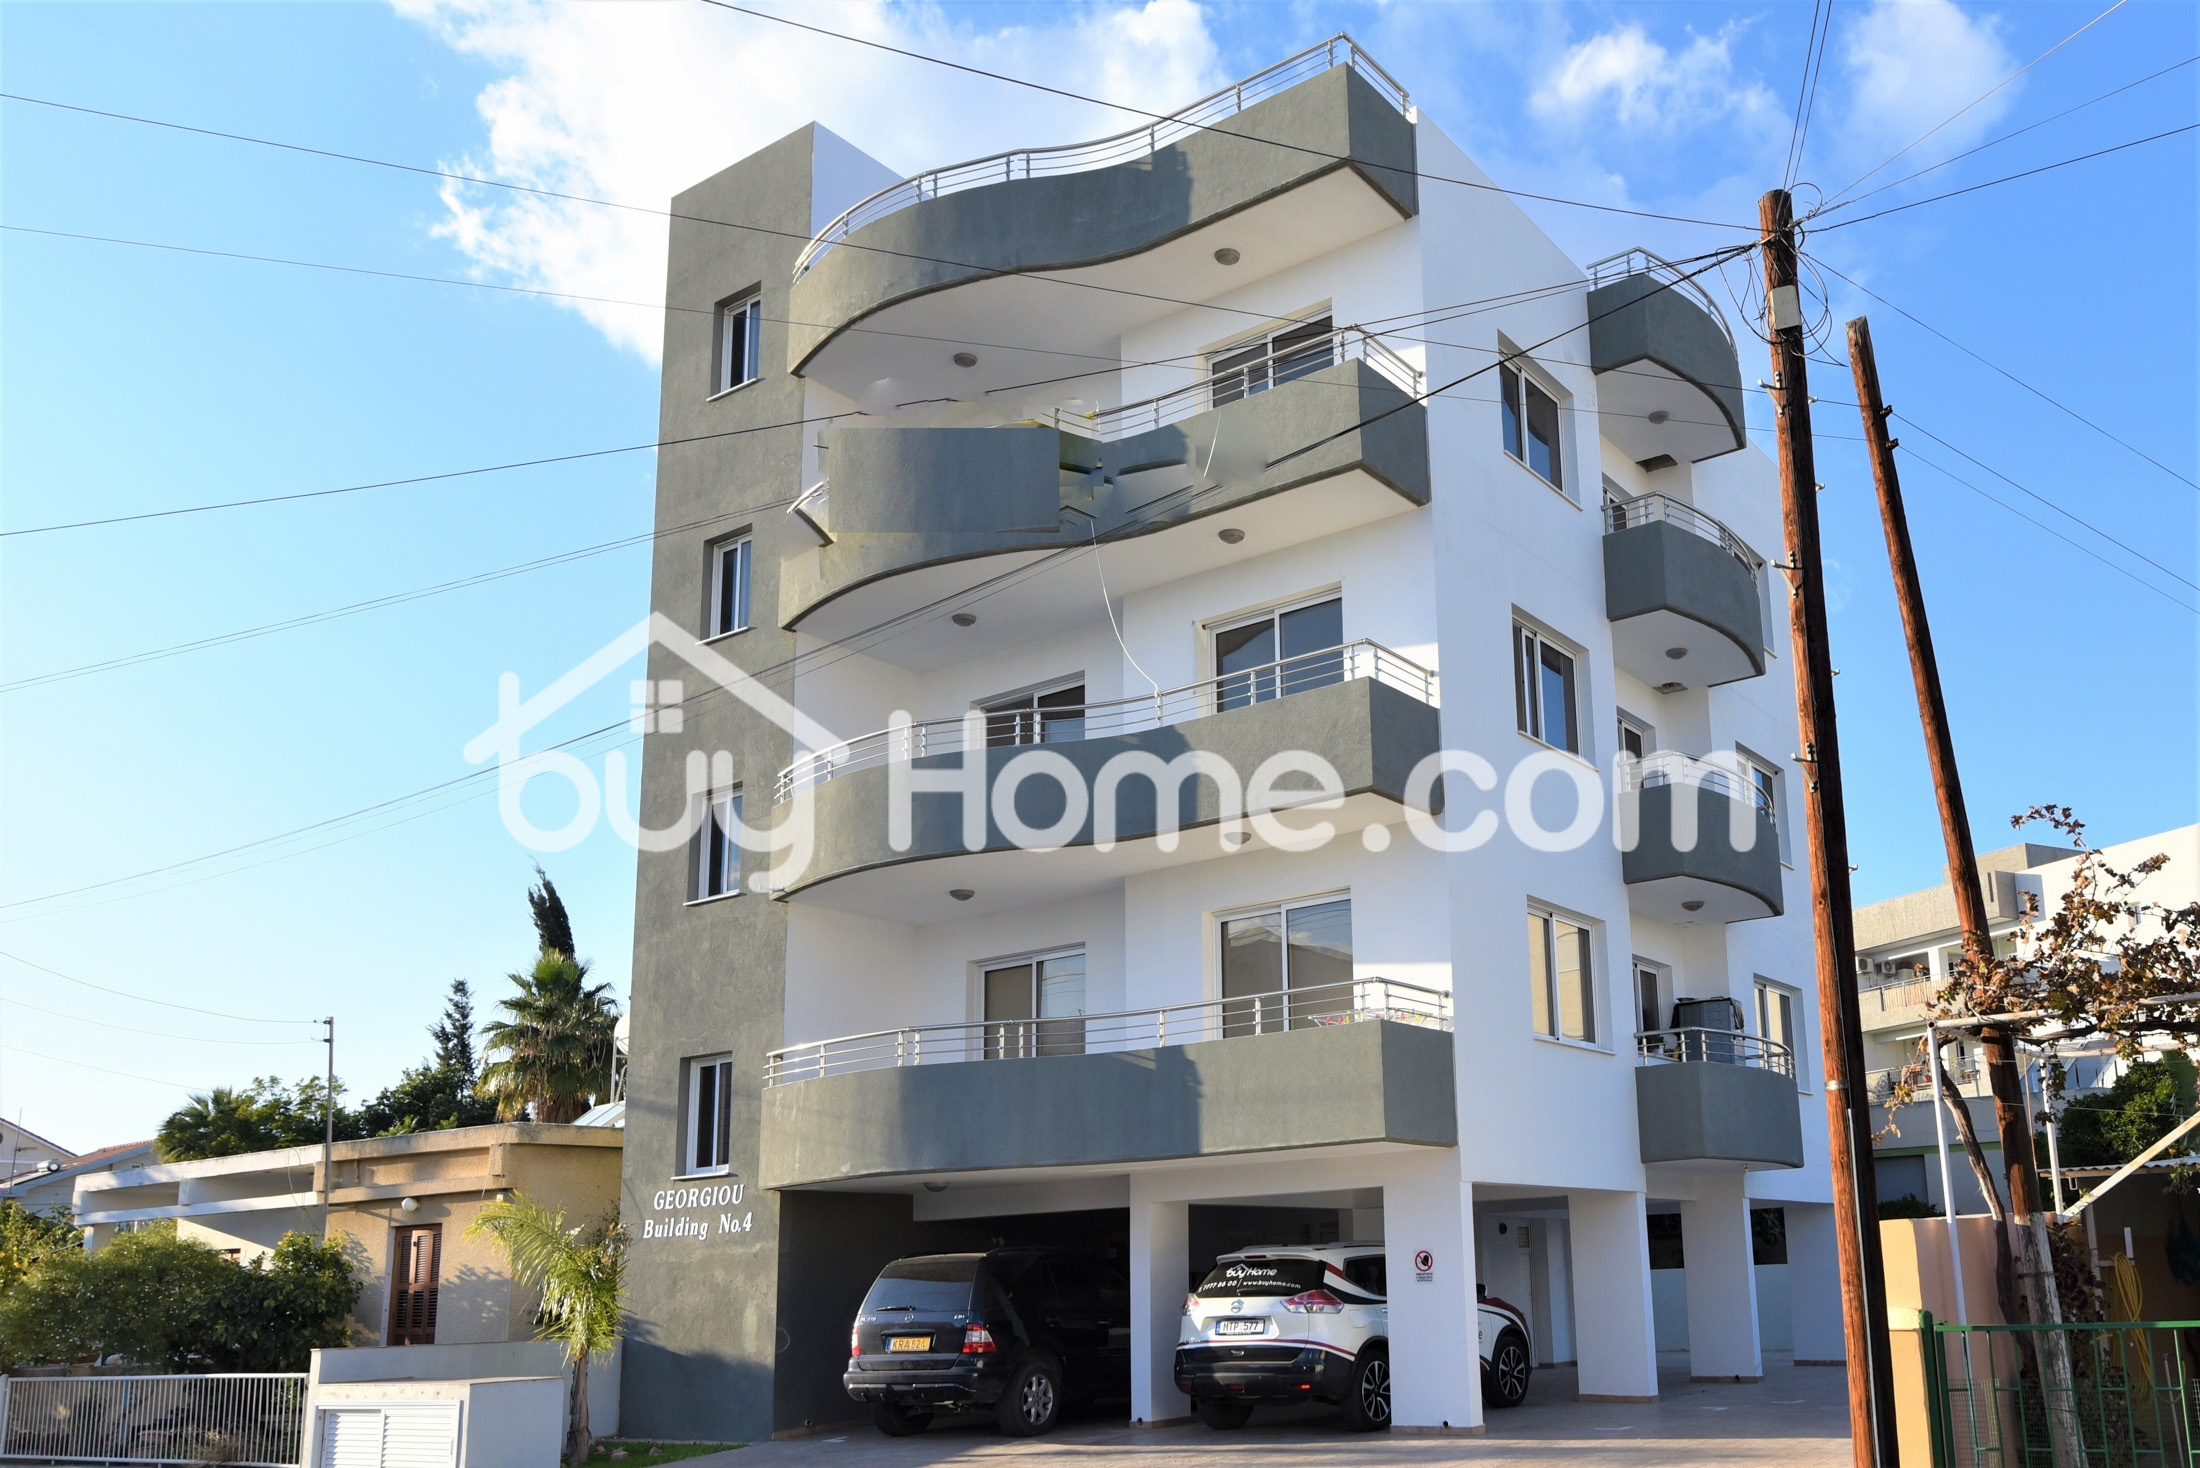 2 Bedroom Apartment With Roof Garden | BuyHome